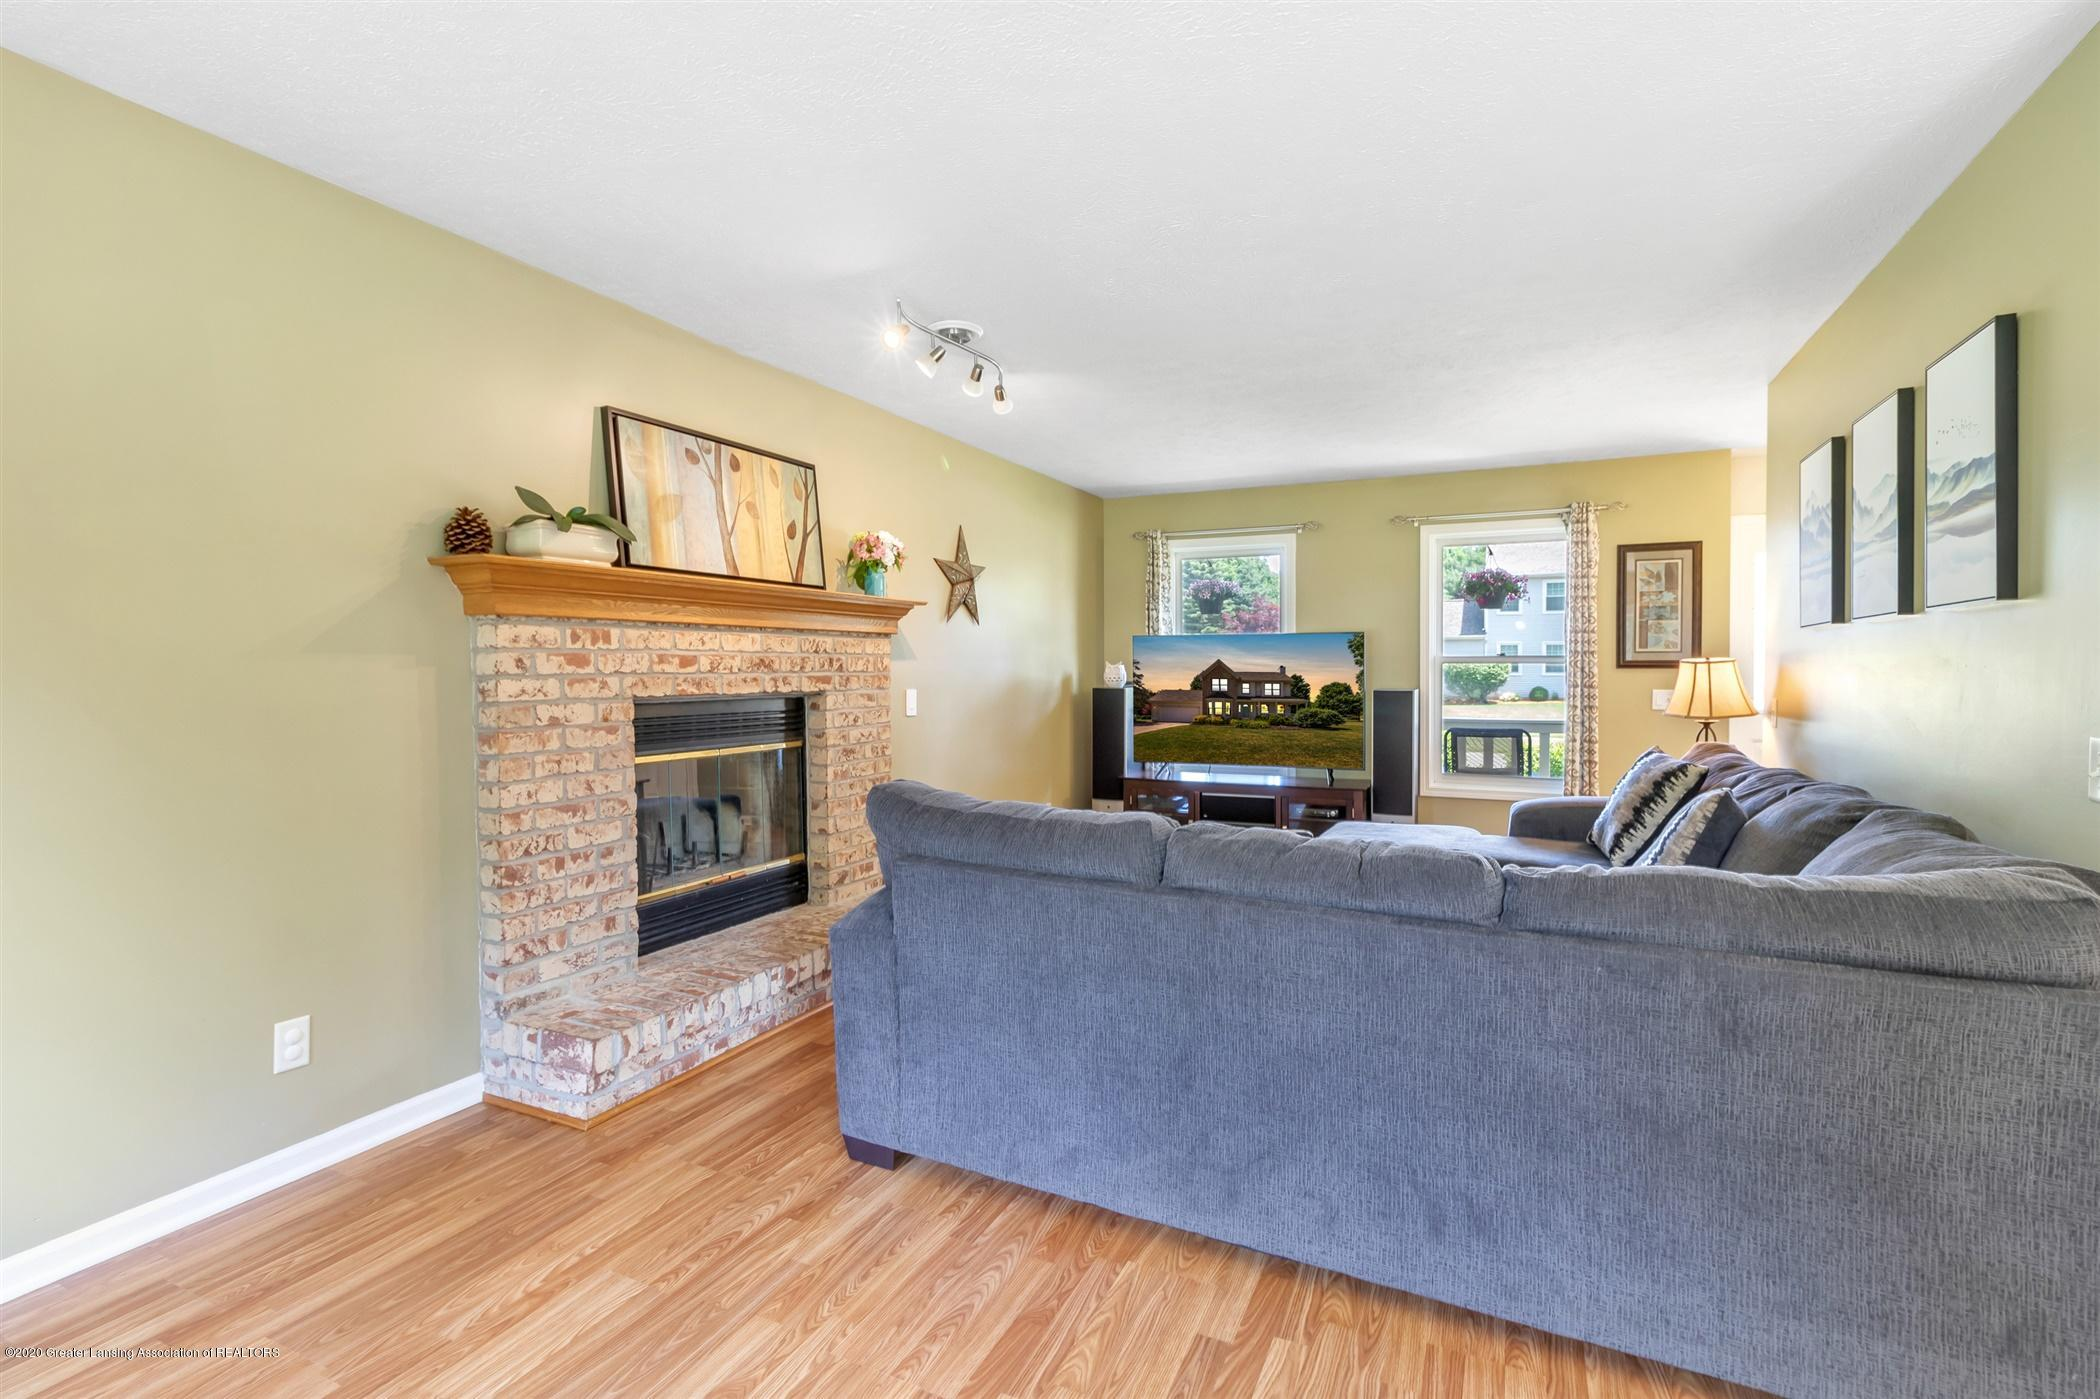 2945 Whistlewood Way - 12-2945Whistlewood-WindowStill-Real - 12